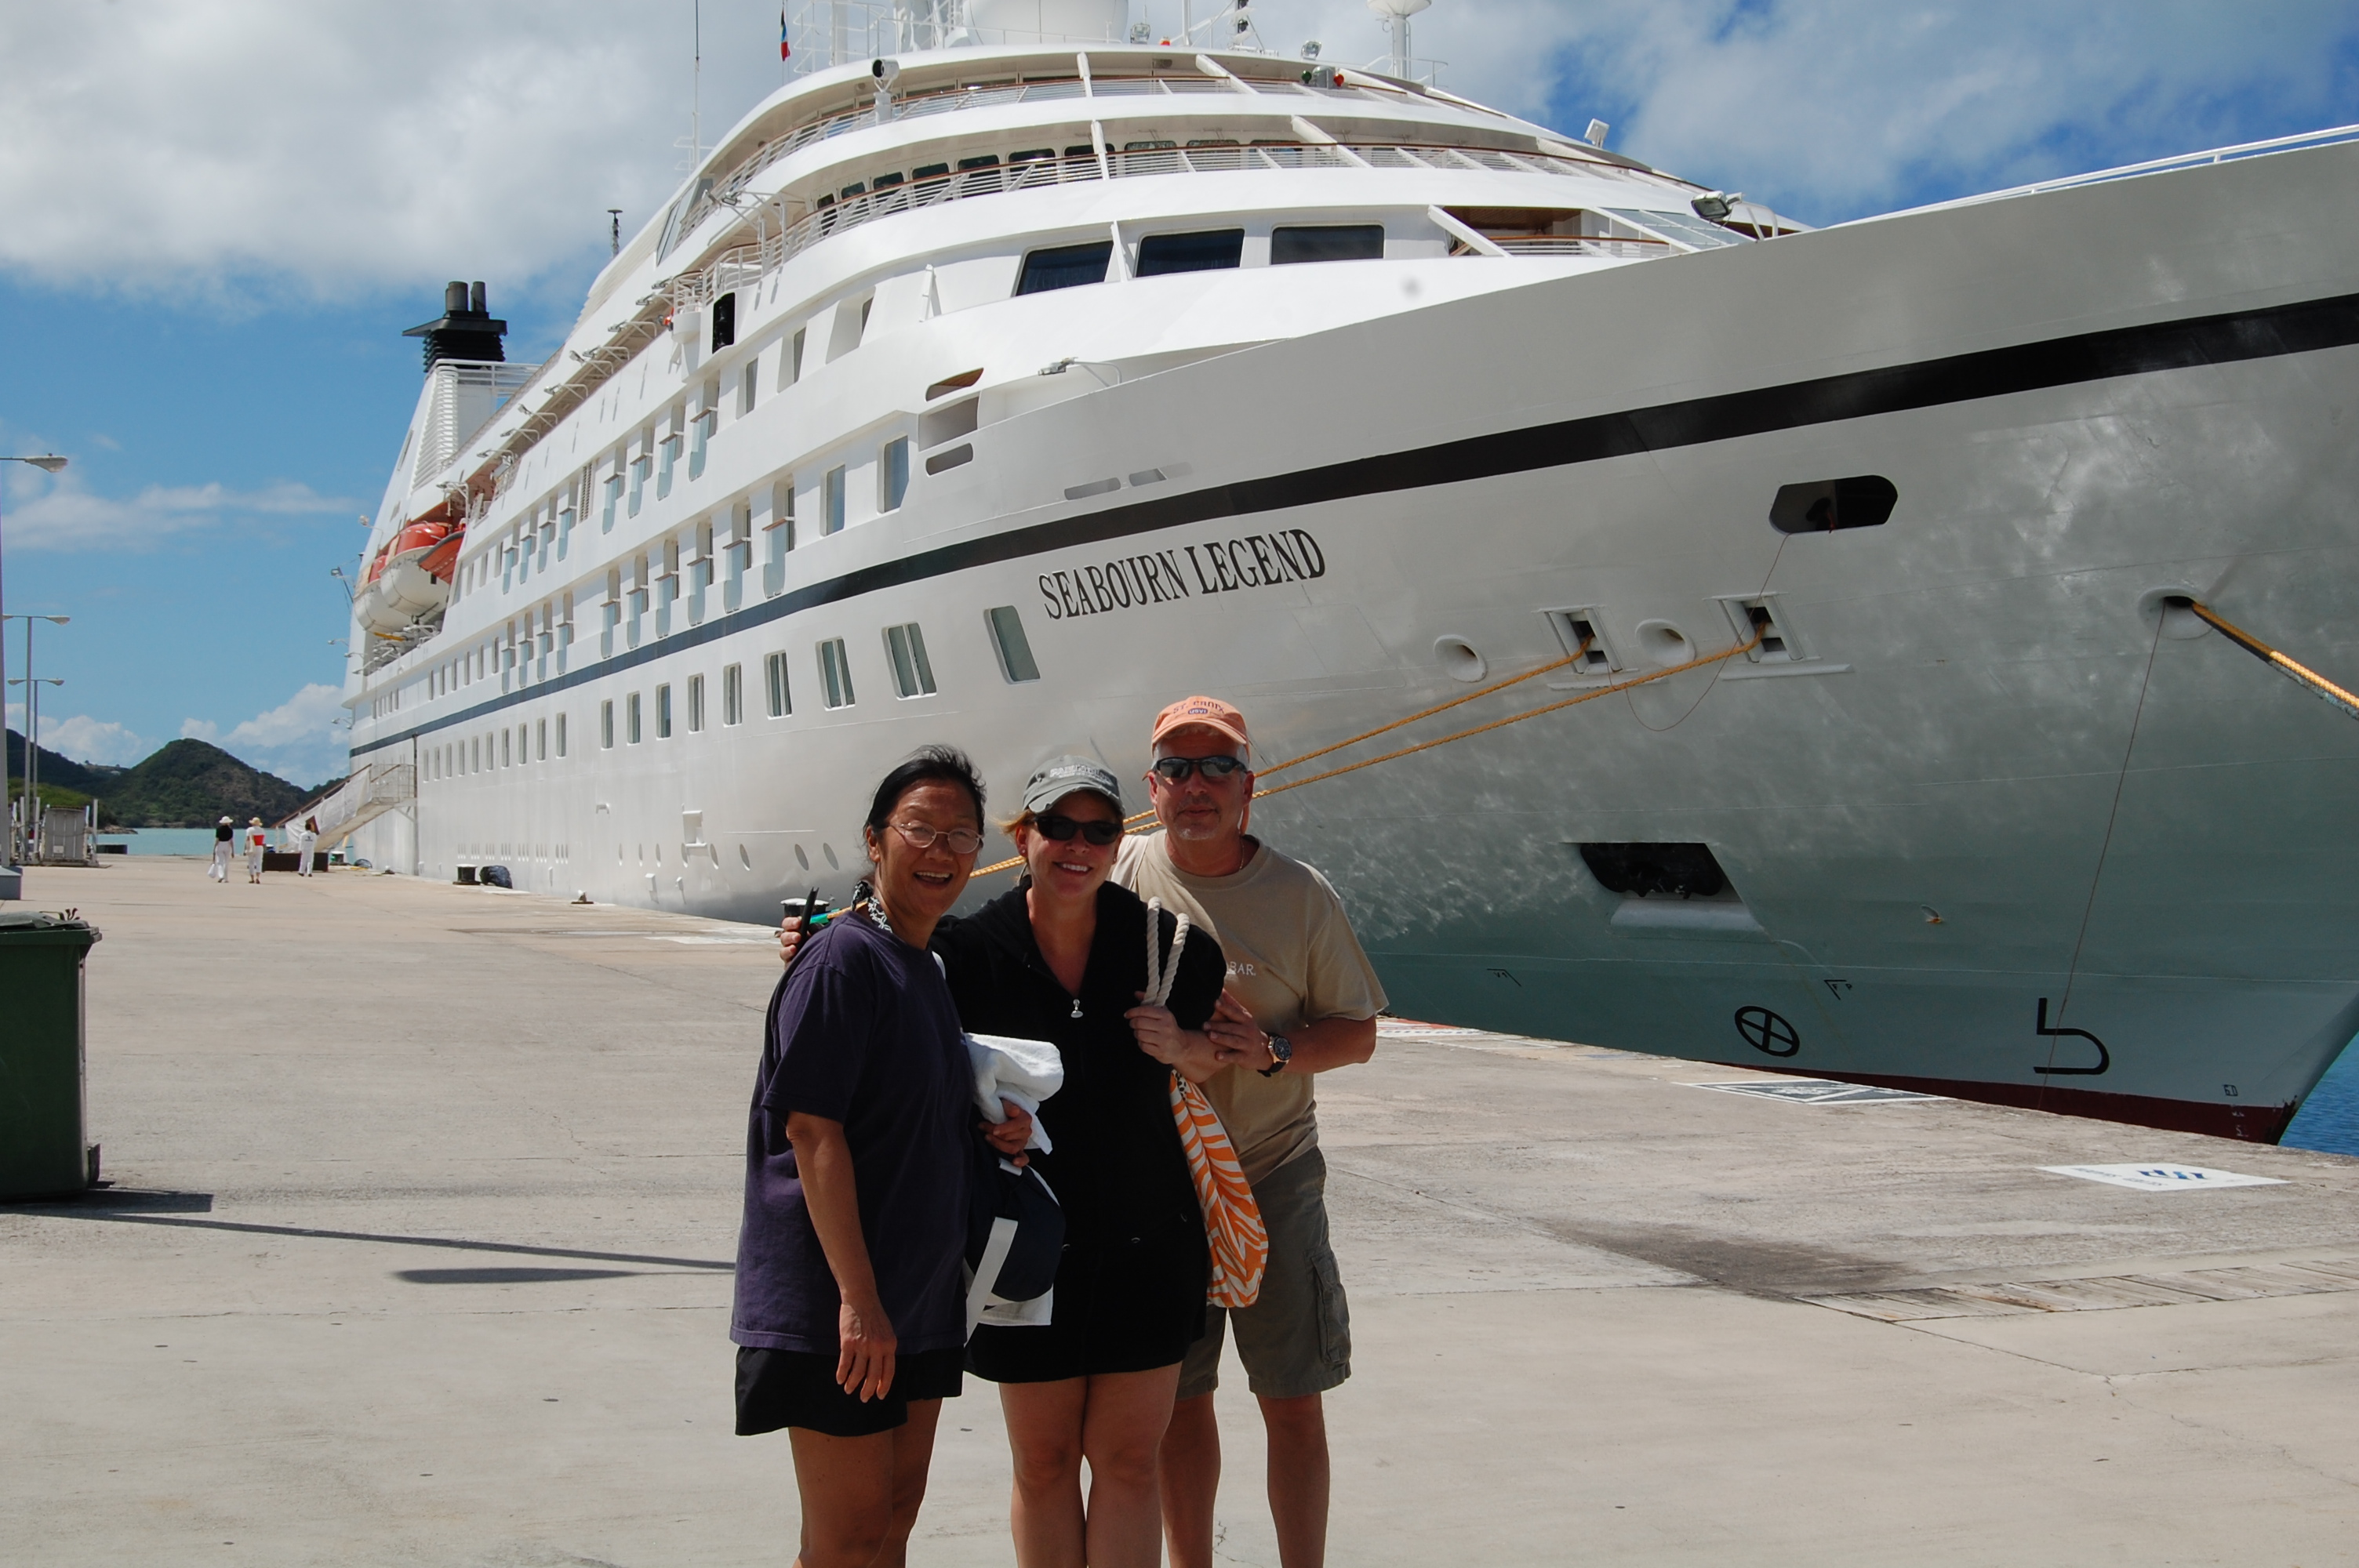 The seabourn legend the world according to jud the seabourn legend baanklon Images